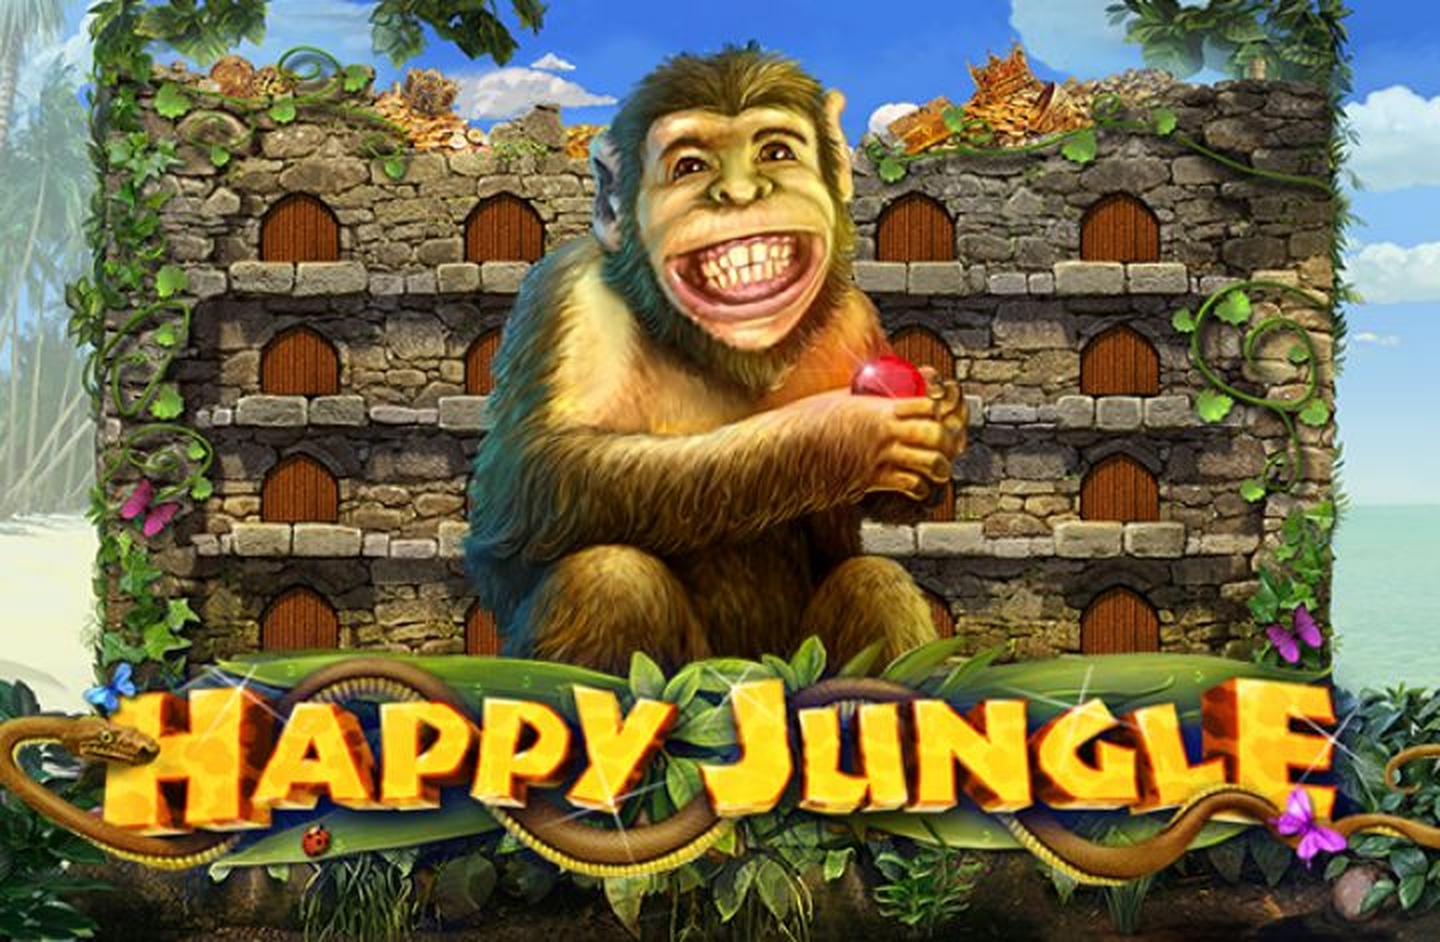 The Happy Jungle Online Slot Demo Game by Playson